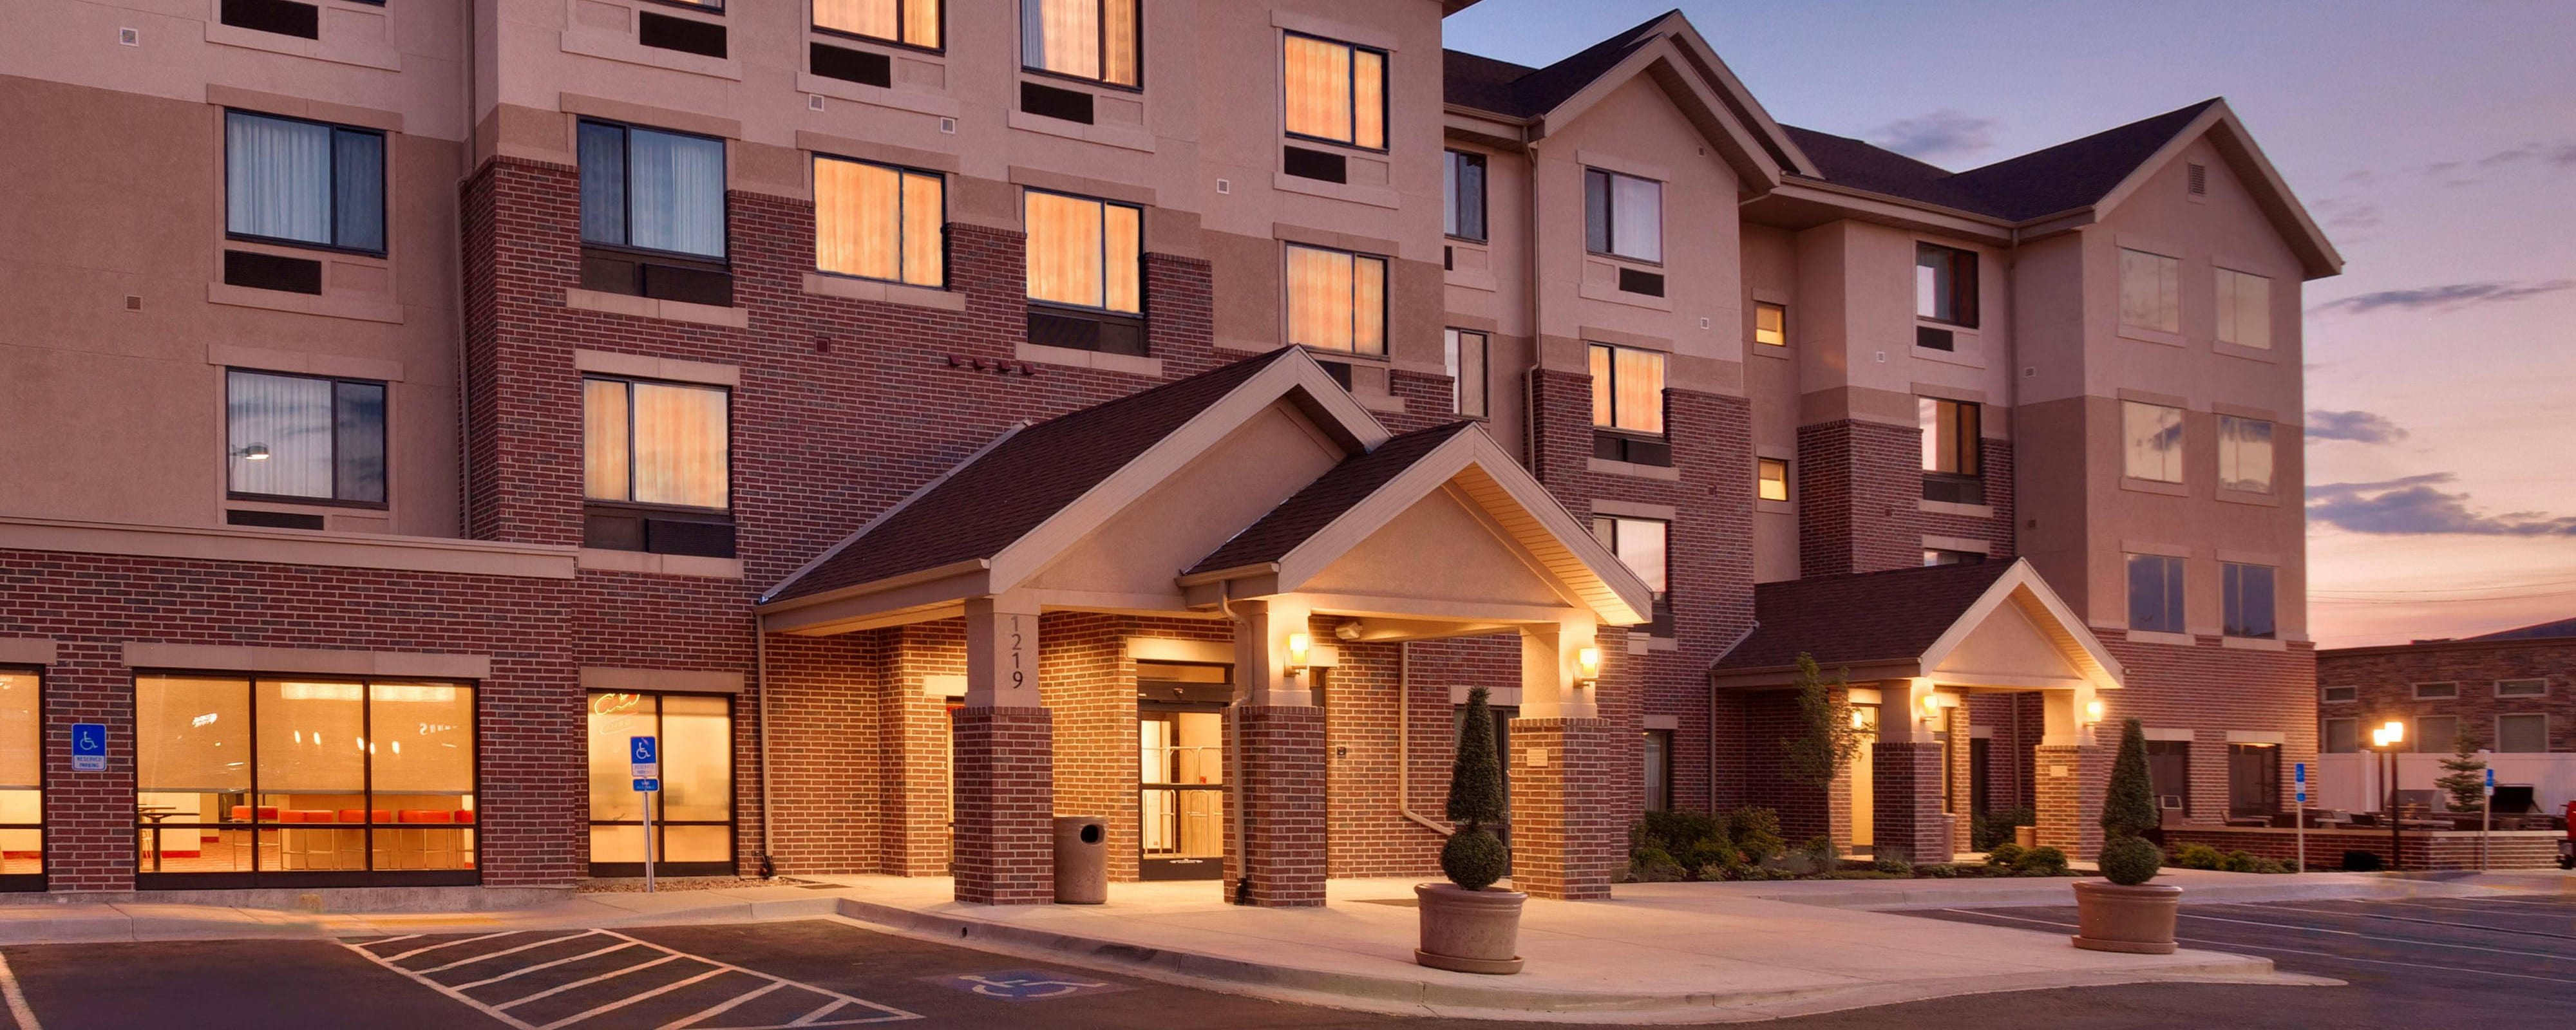 TownePlace Suites Vernal Marriott